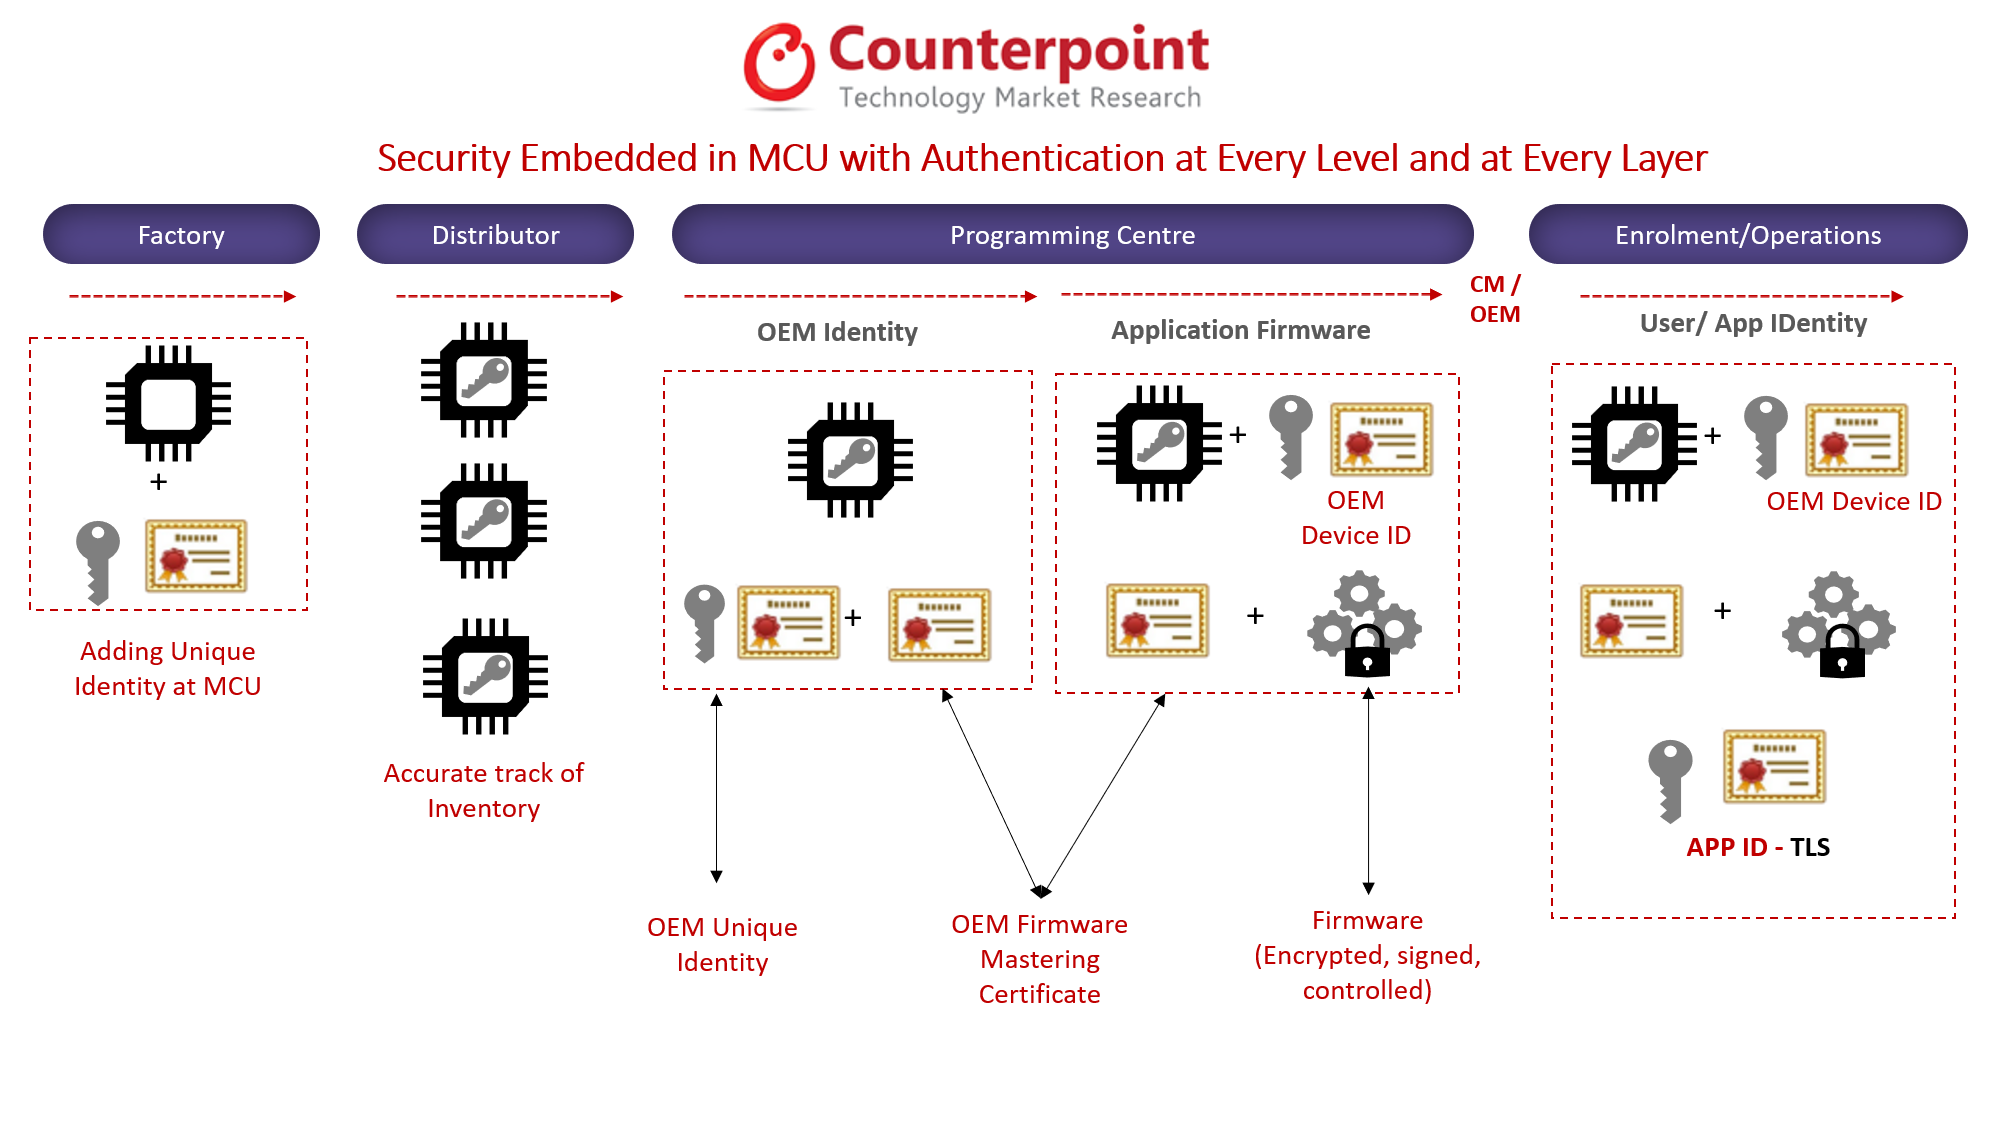 Security Embedded in MCU with Authentication at Every Level and at Every Layer